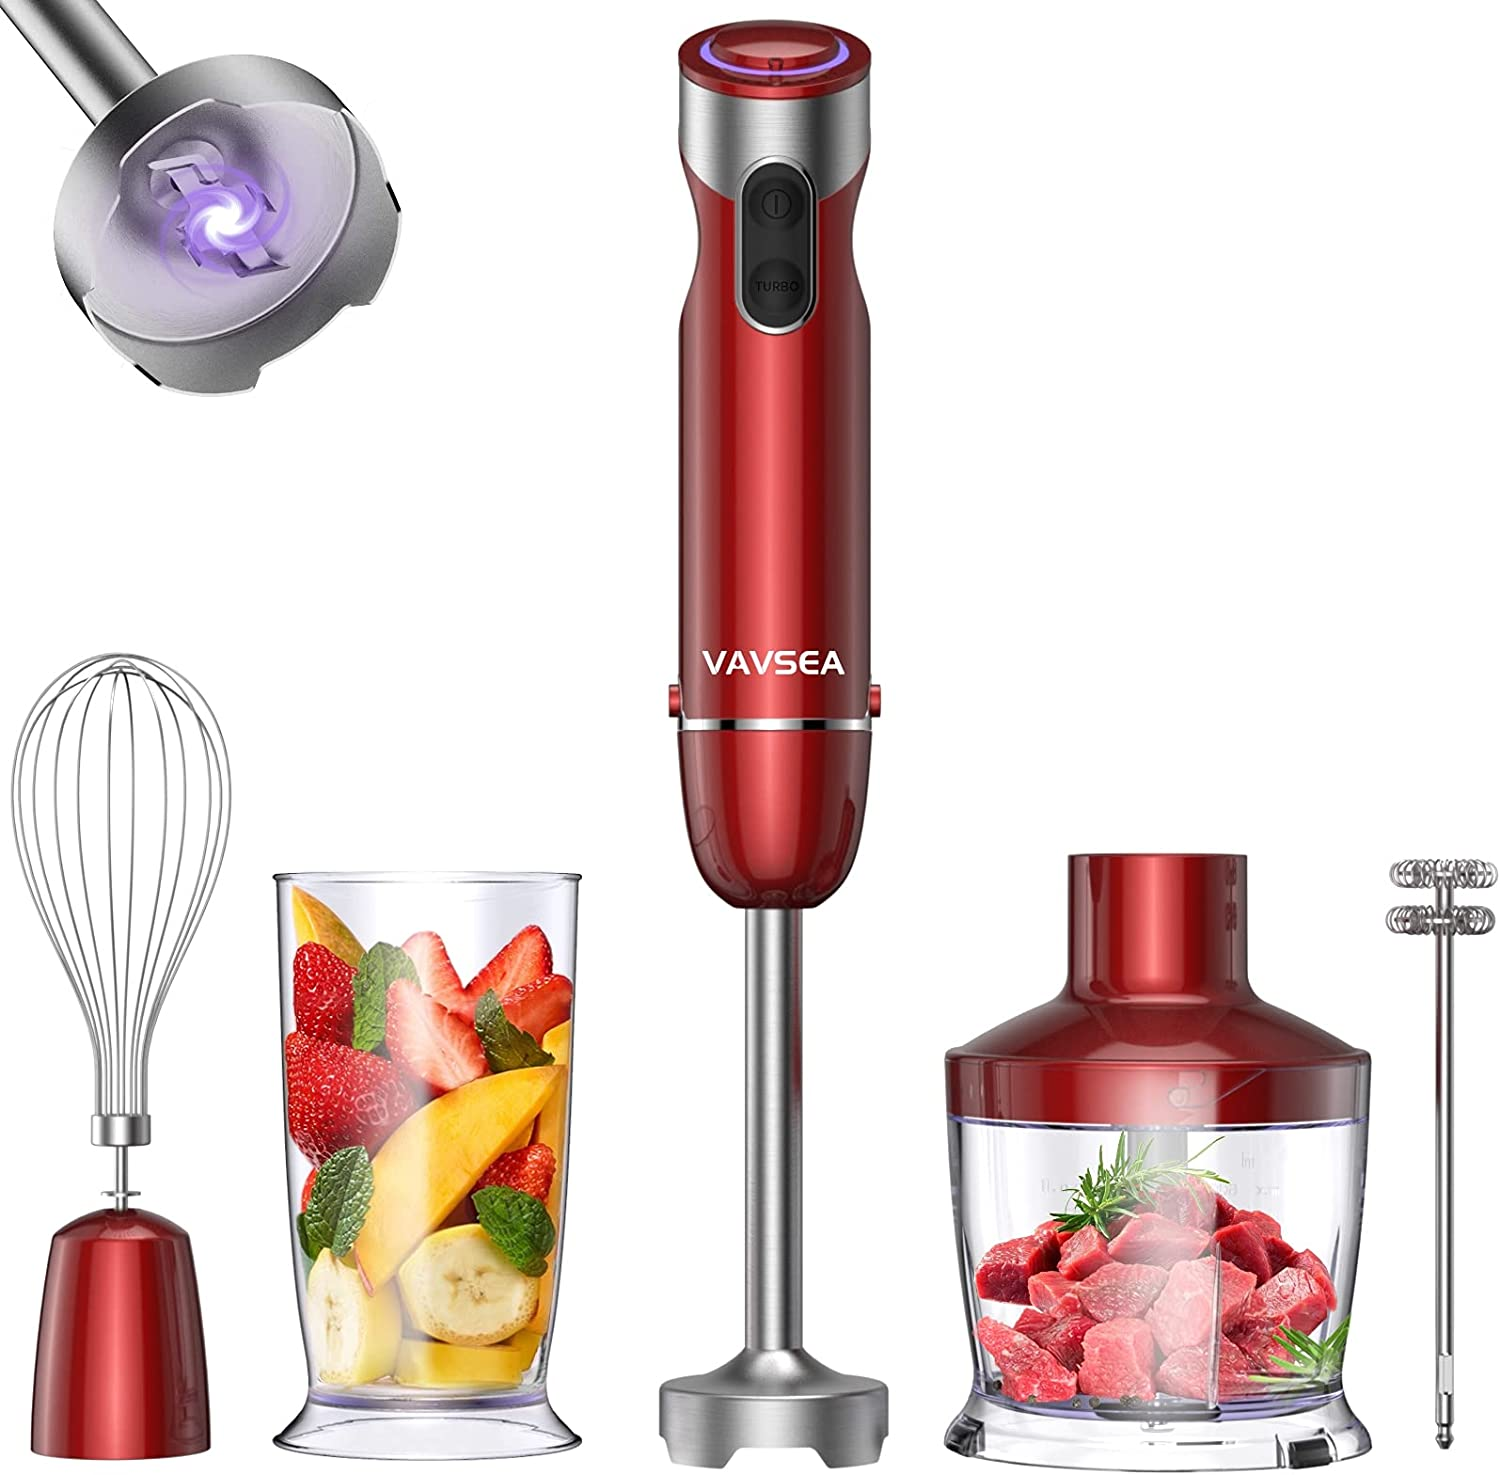 VAVSEA 1000W 5-in-1 Immersion hand Blender, 12 Speed Stick Blender with Mixing Beaker (22oz), Food Processor, 304 Stainless Steel With Egg Whisk, Milk Frother for Puree Infant Food, BPA Free, Red